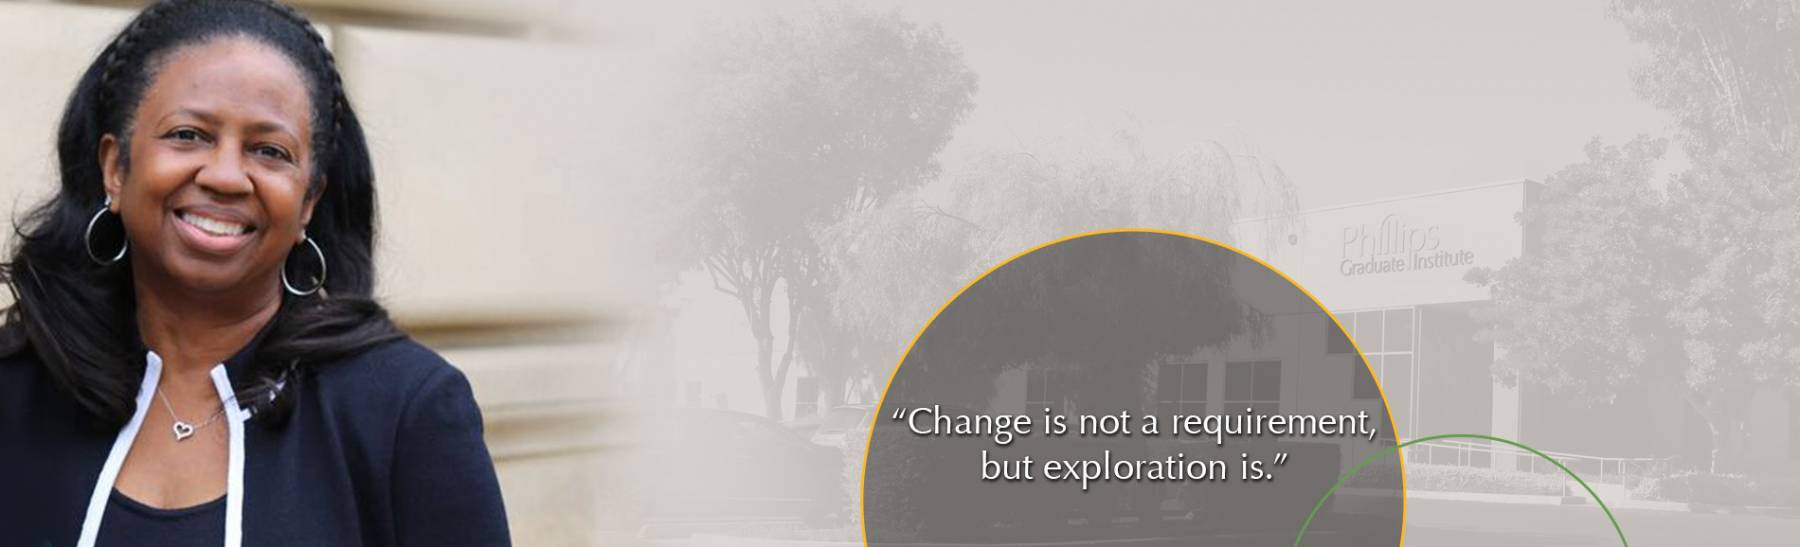 Change is not a requirement, but exploration is.